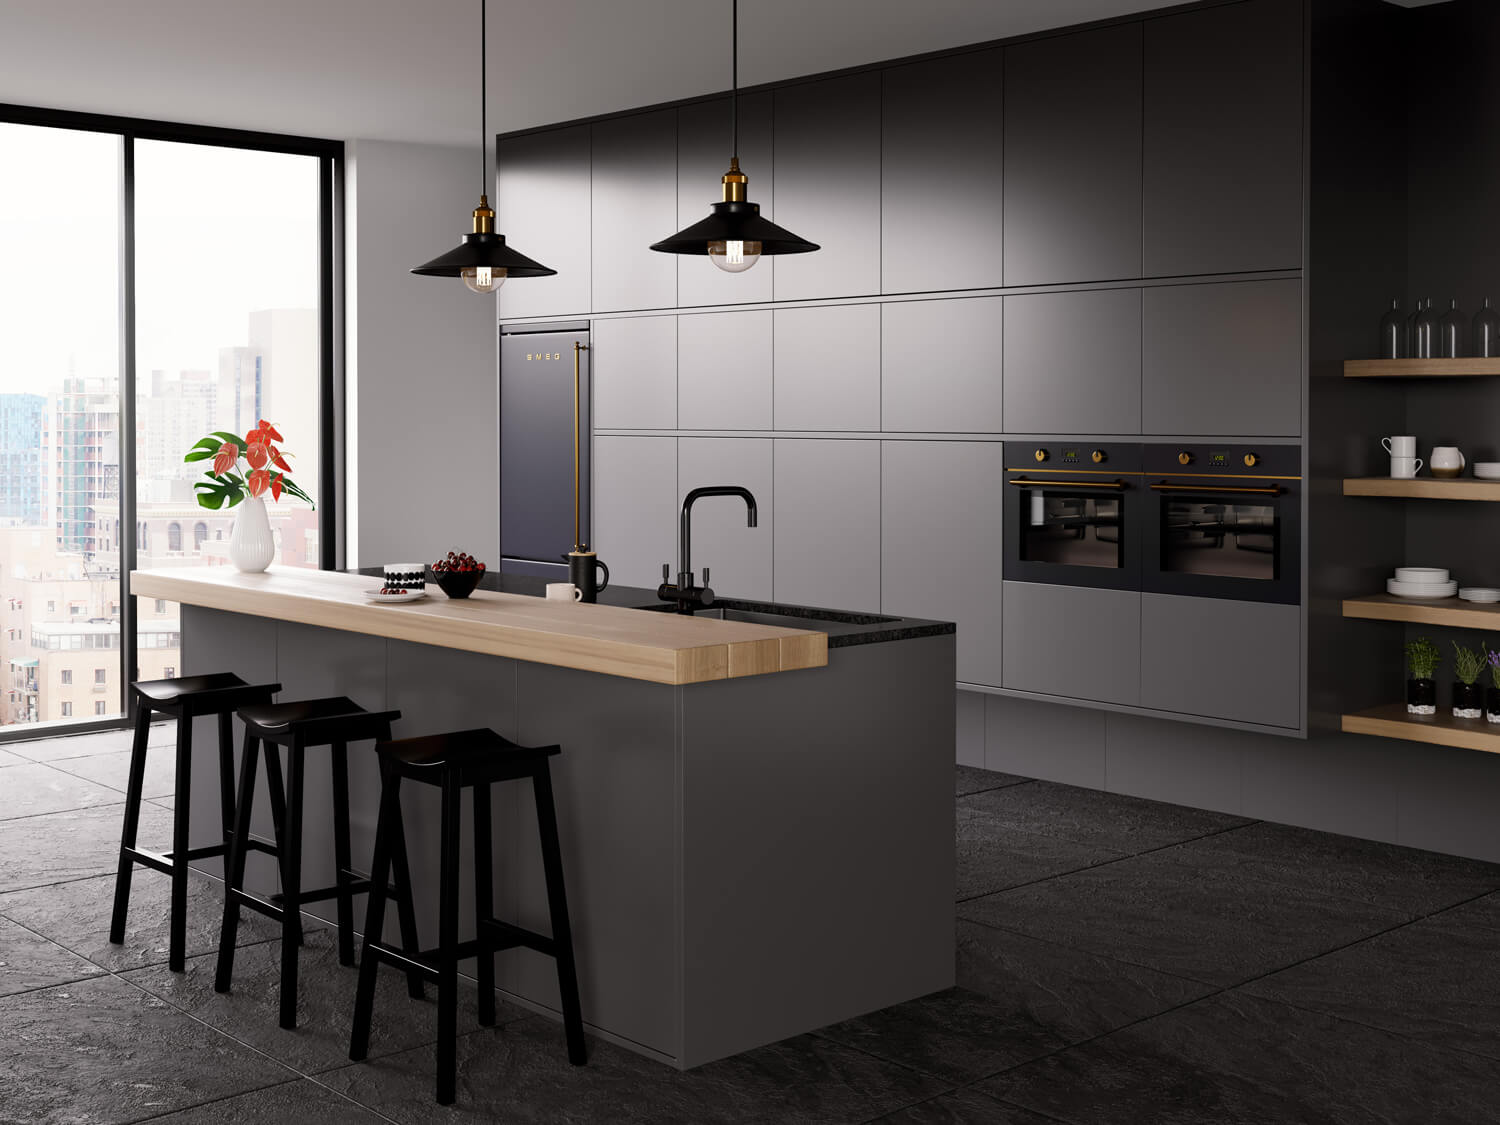 Stunning modern kitchen 3D rendering showing tap product CGI - monochrome design with wood island to the centre, shelves in the background and fitted fridge.